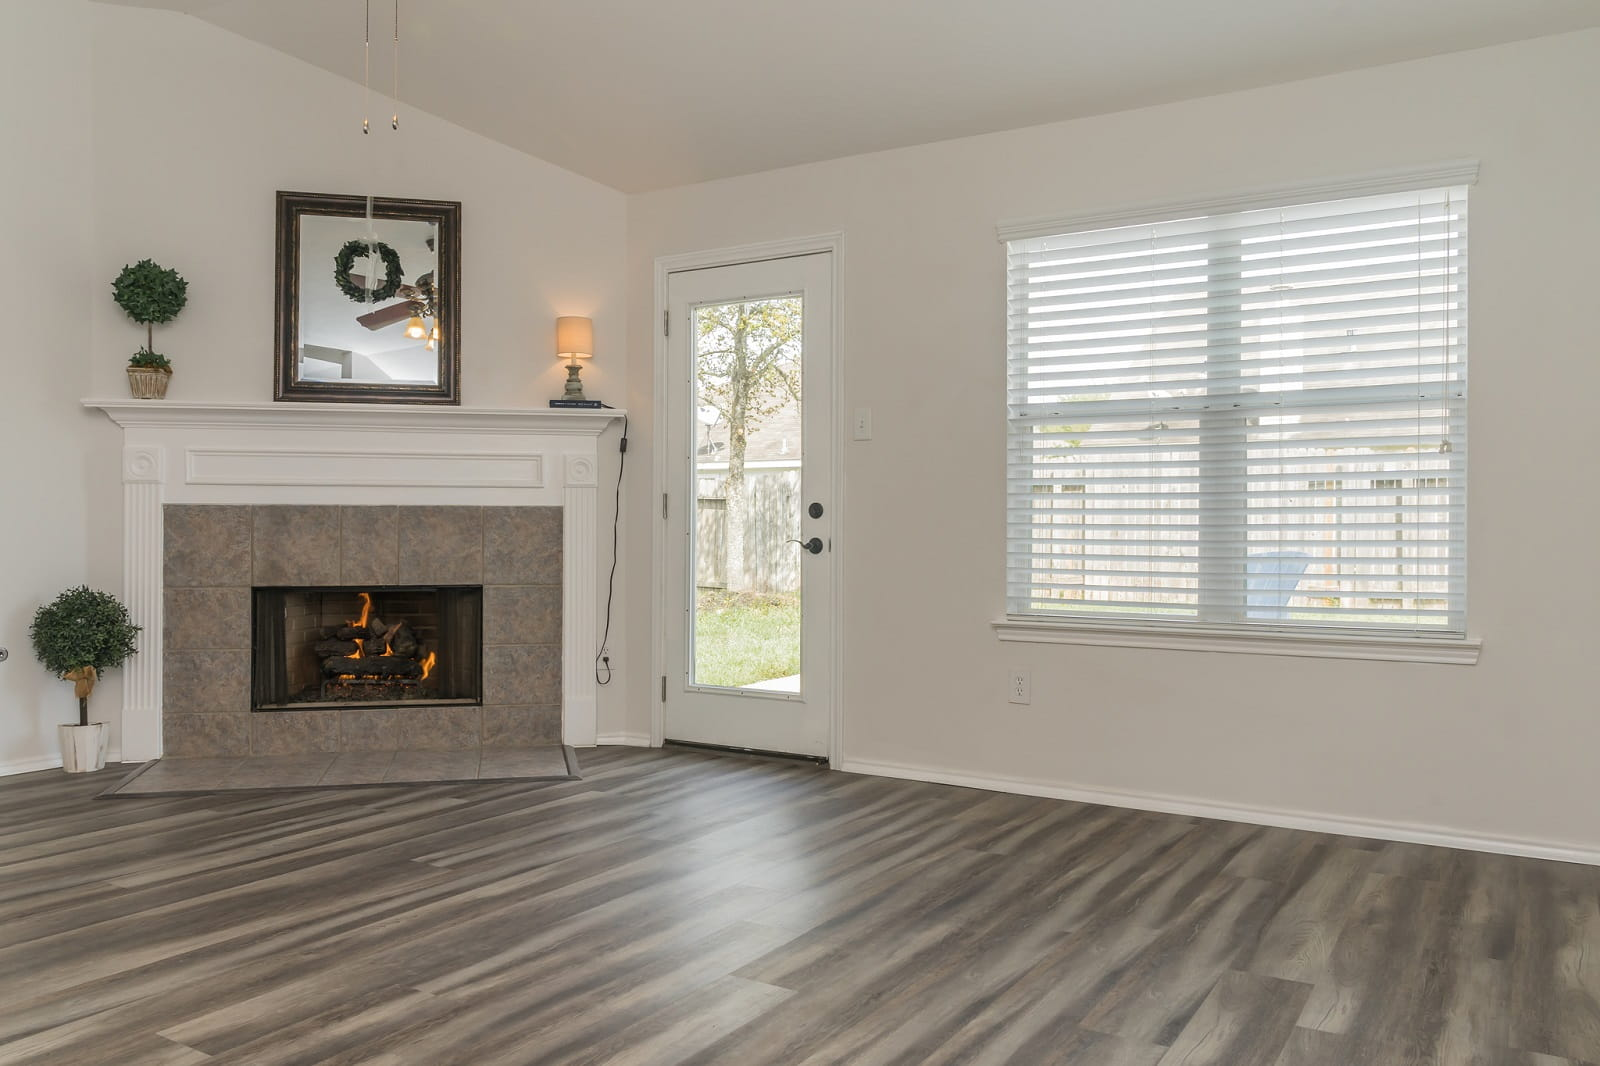 Real Estate Photographers in Baytown - TX - Living Area View